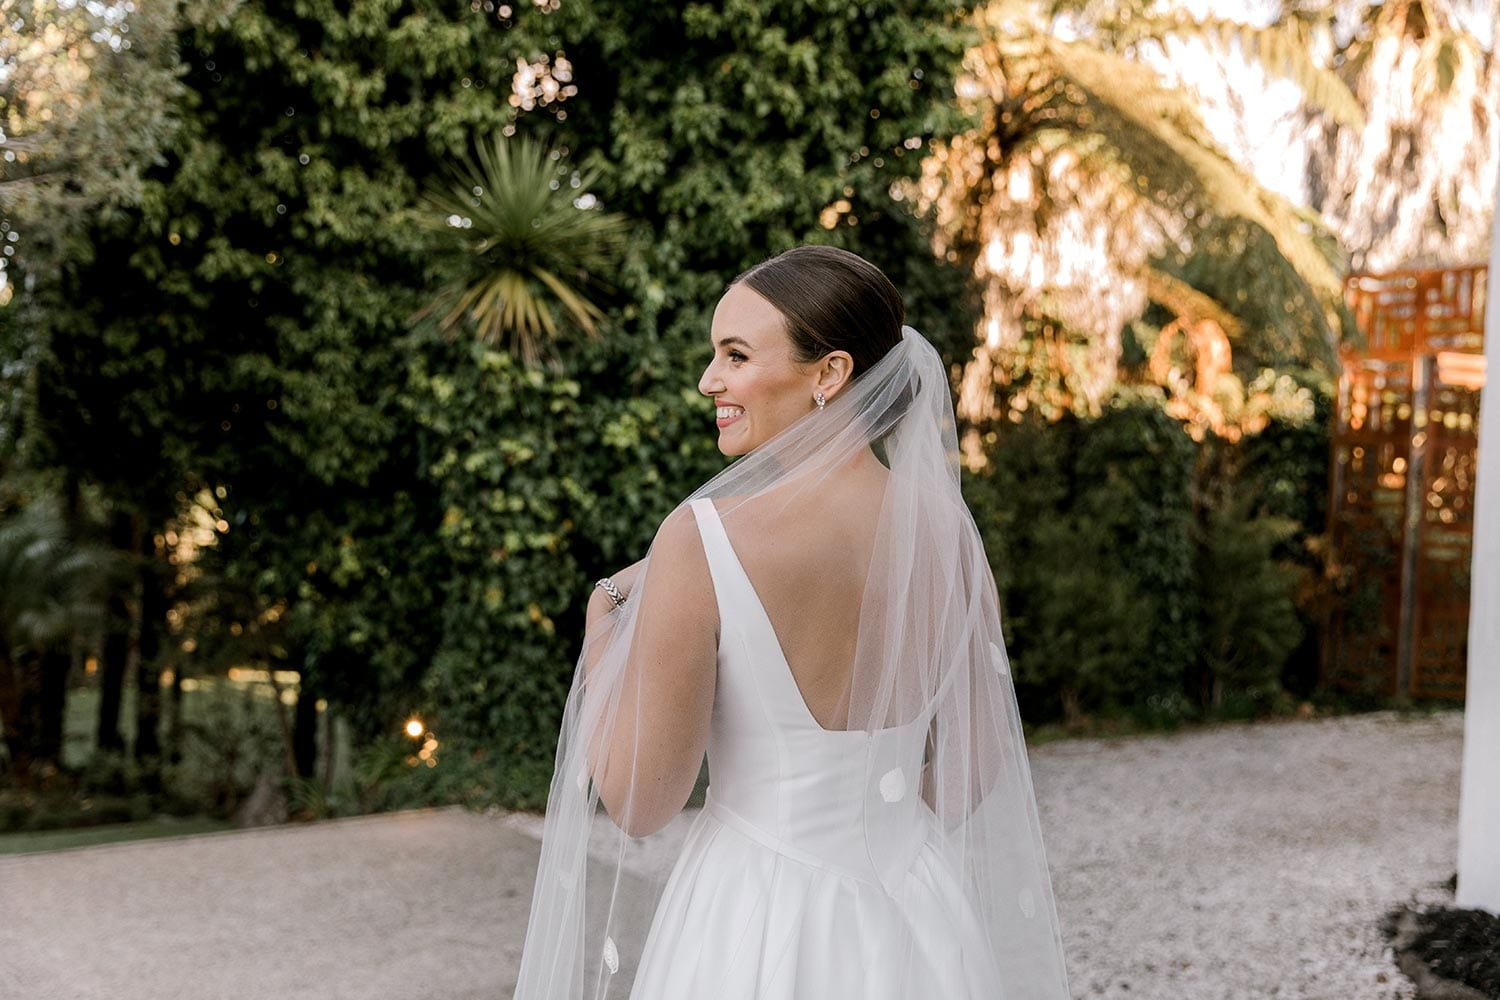 Madison Wedding Dress from Vinka Design. Classic Mikado satin wedding dress. Structured bodice with deep V-neckline & low back. Side pockets in the skirt give fun & versatility, with a sweeping train. Top half of gown from the back. Photographed outdoors.